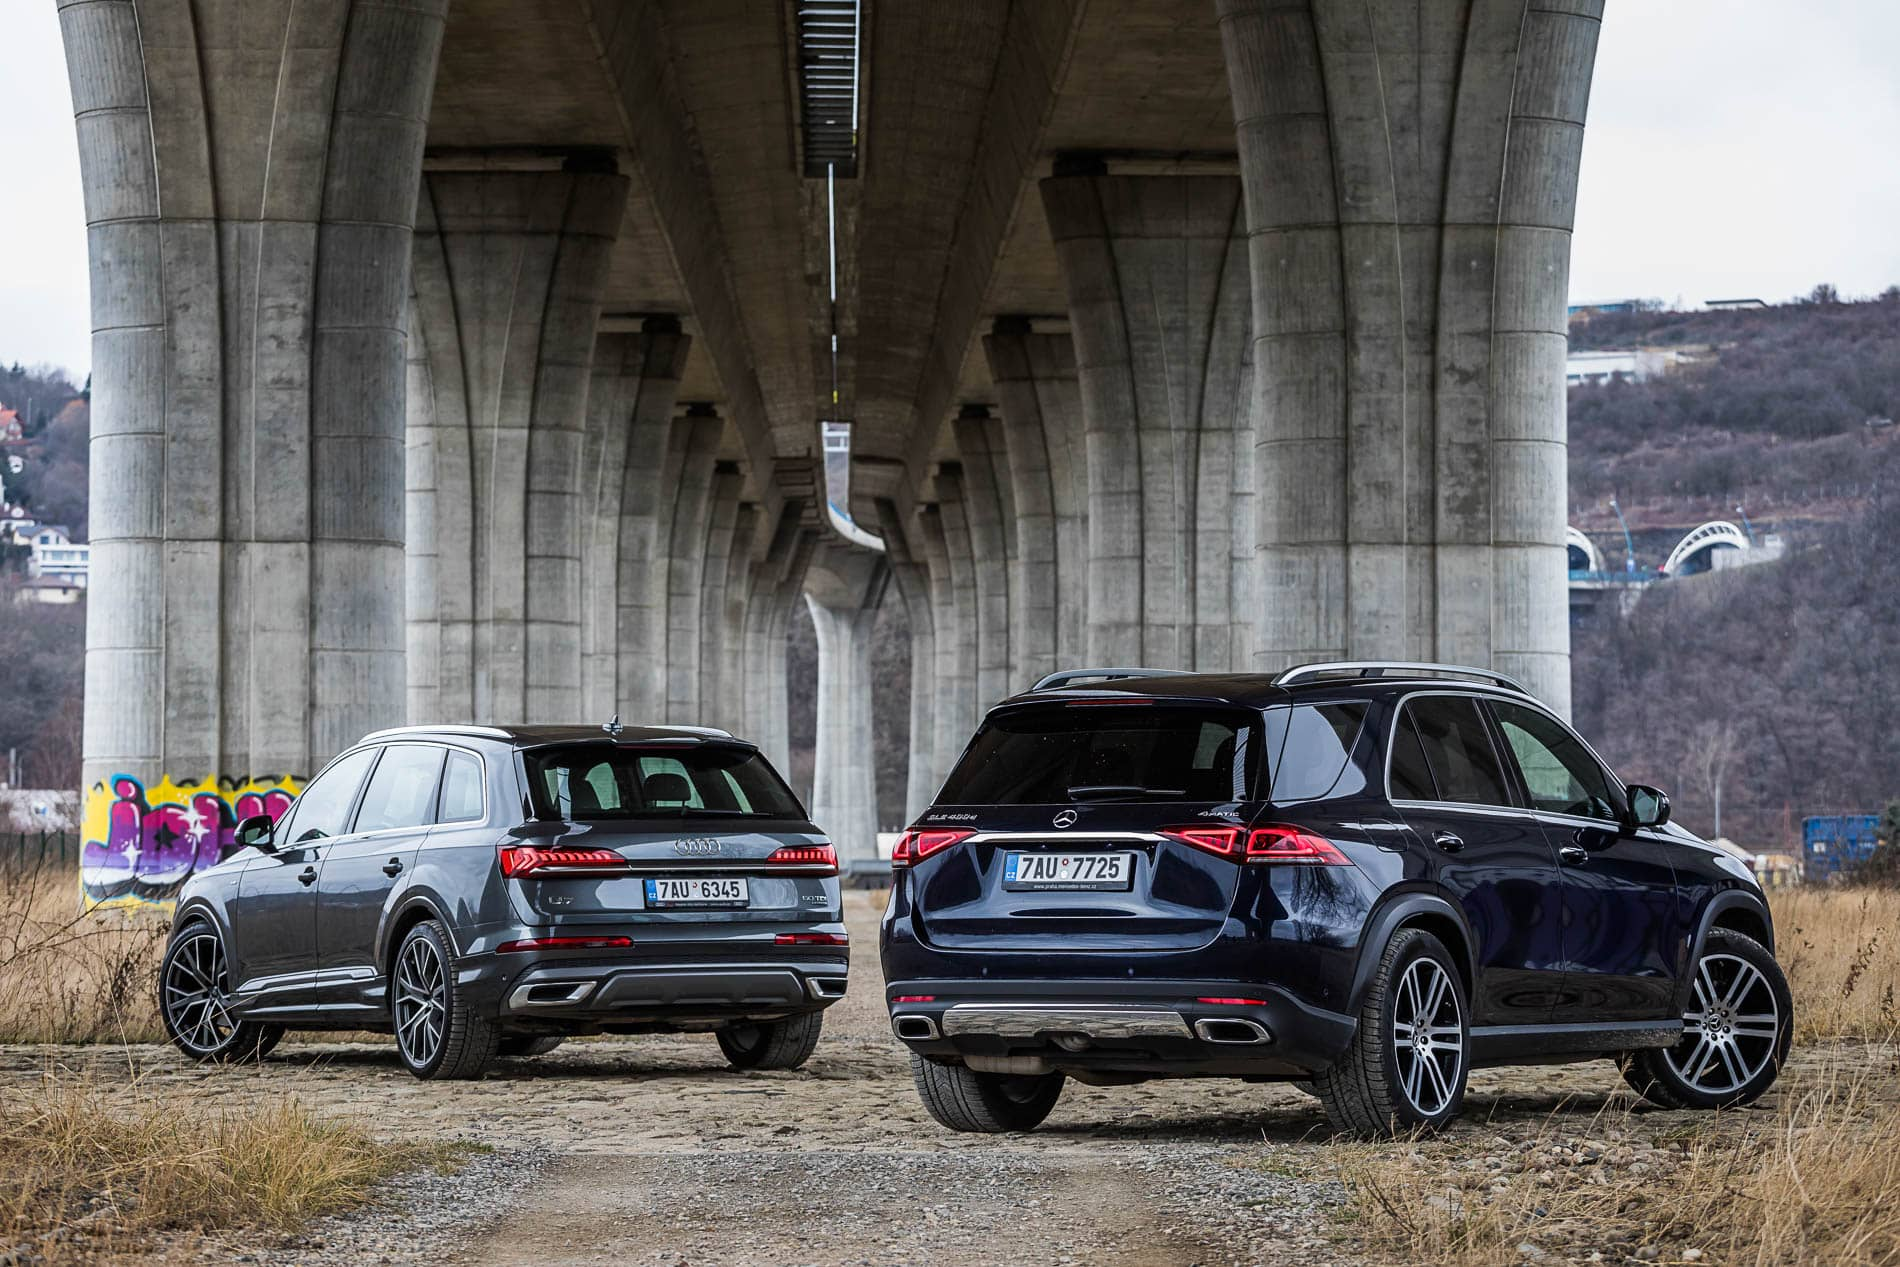 aud q7 vs mercedes gle (7)